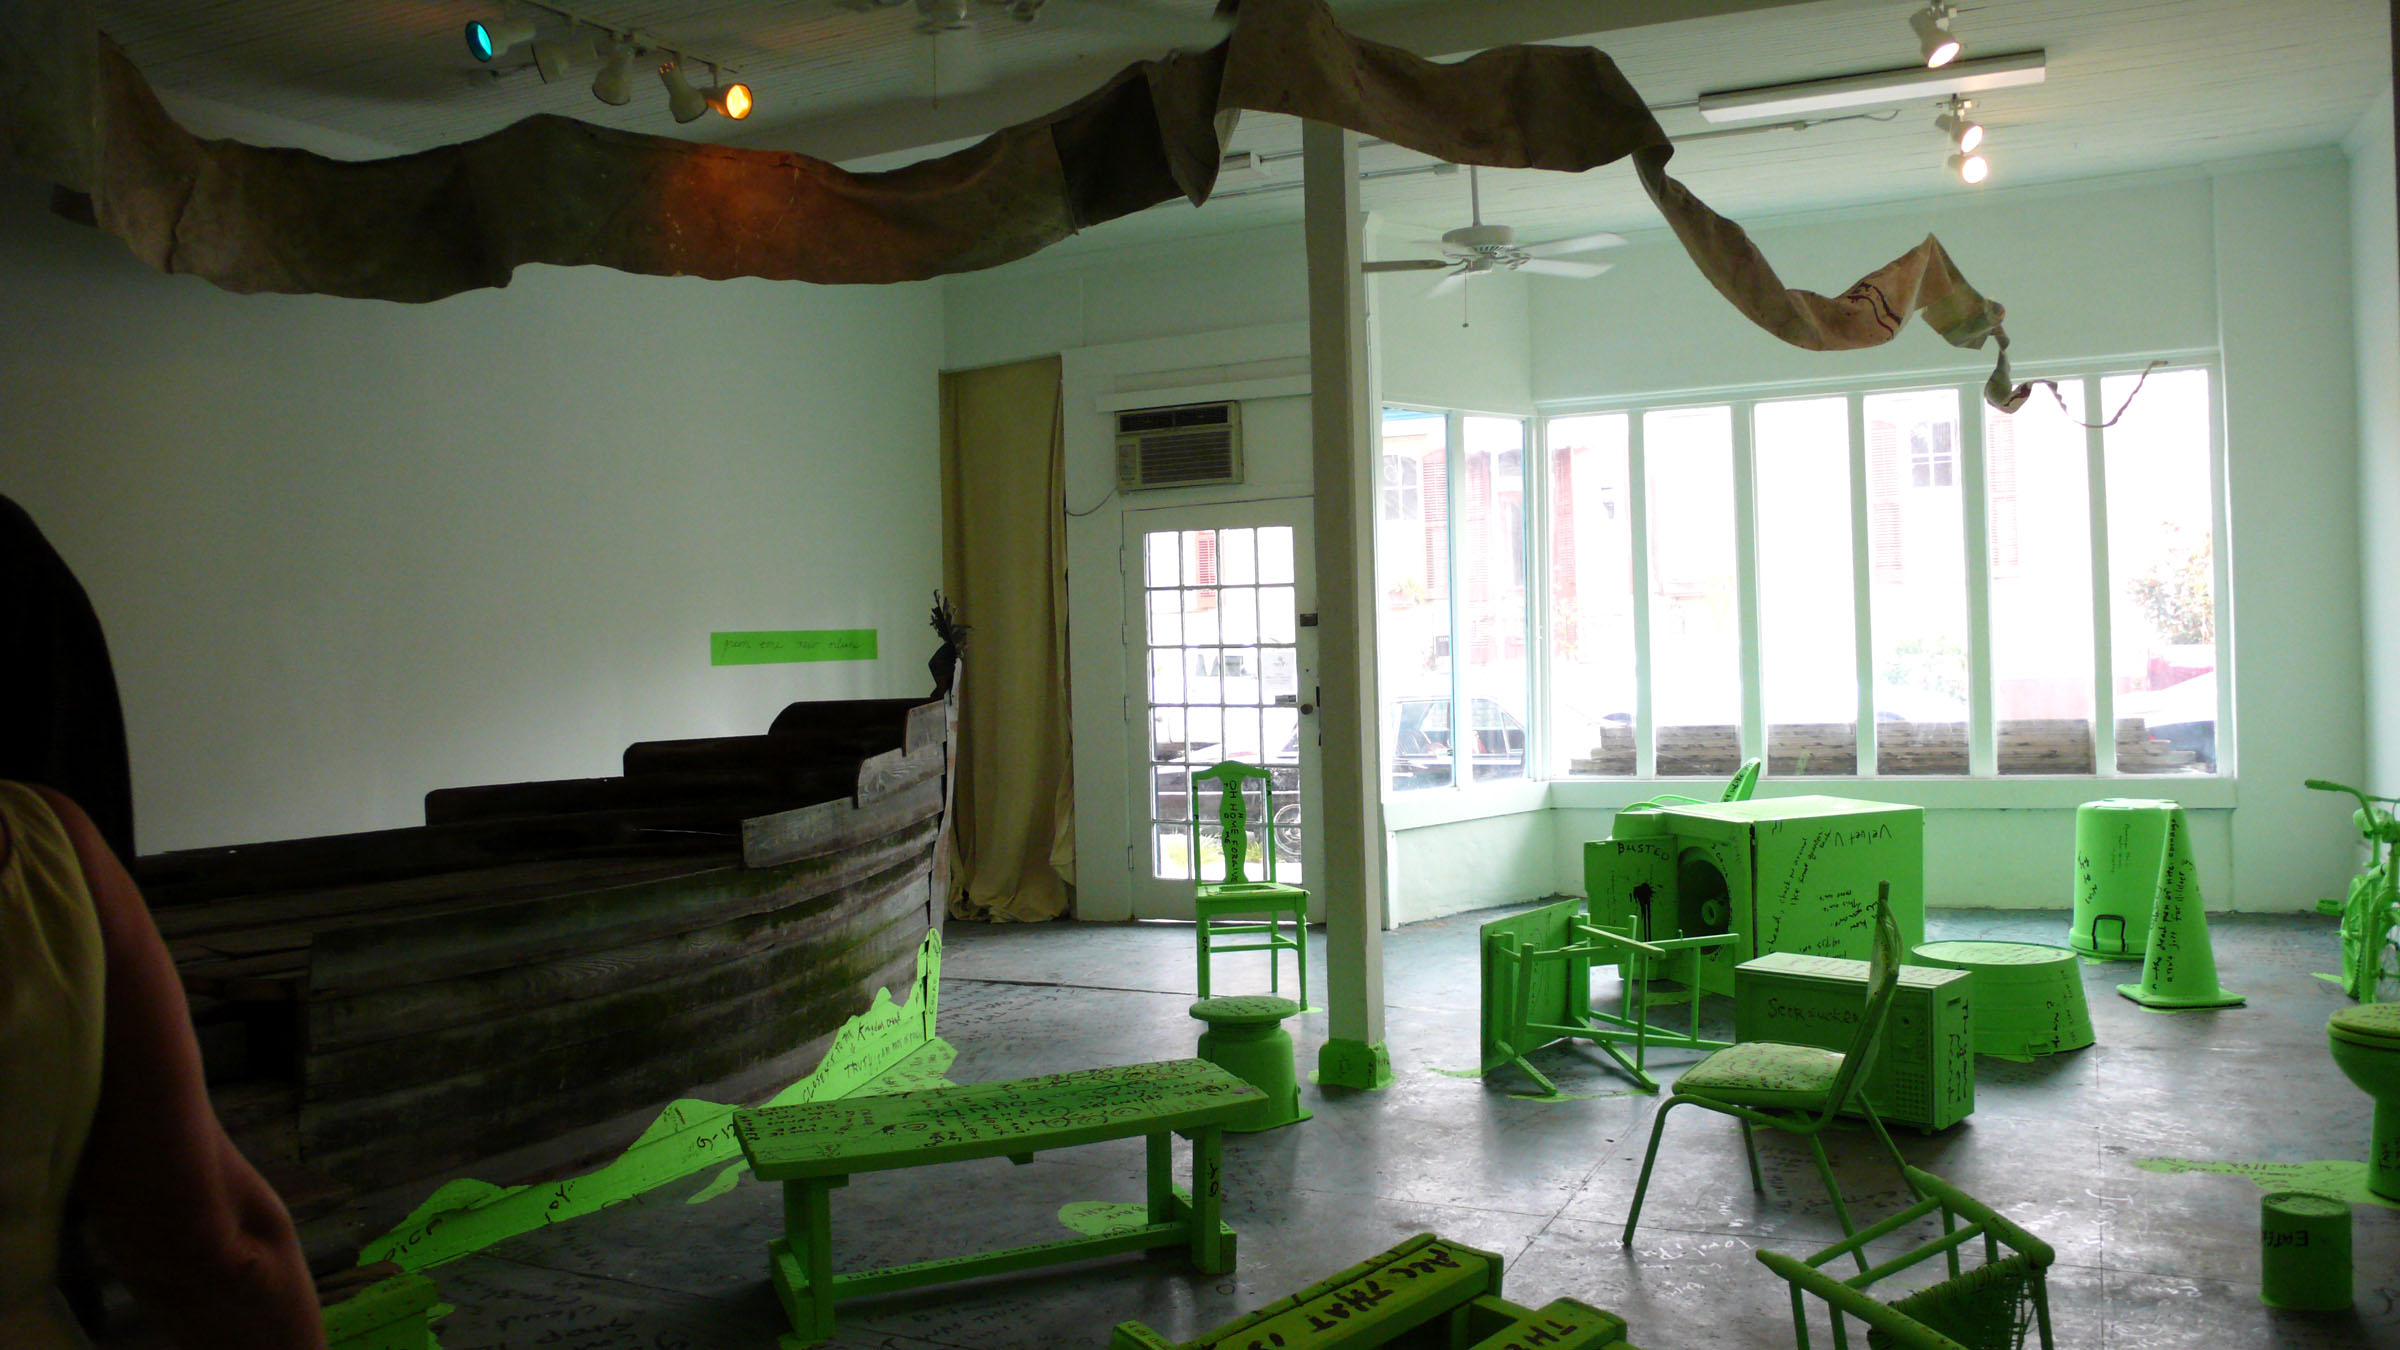 Green Zone New Orleans exhibition in 2009 at the original home of Antenna, 3161 Burgundy St.